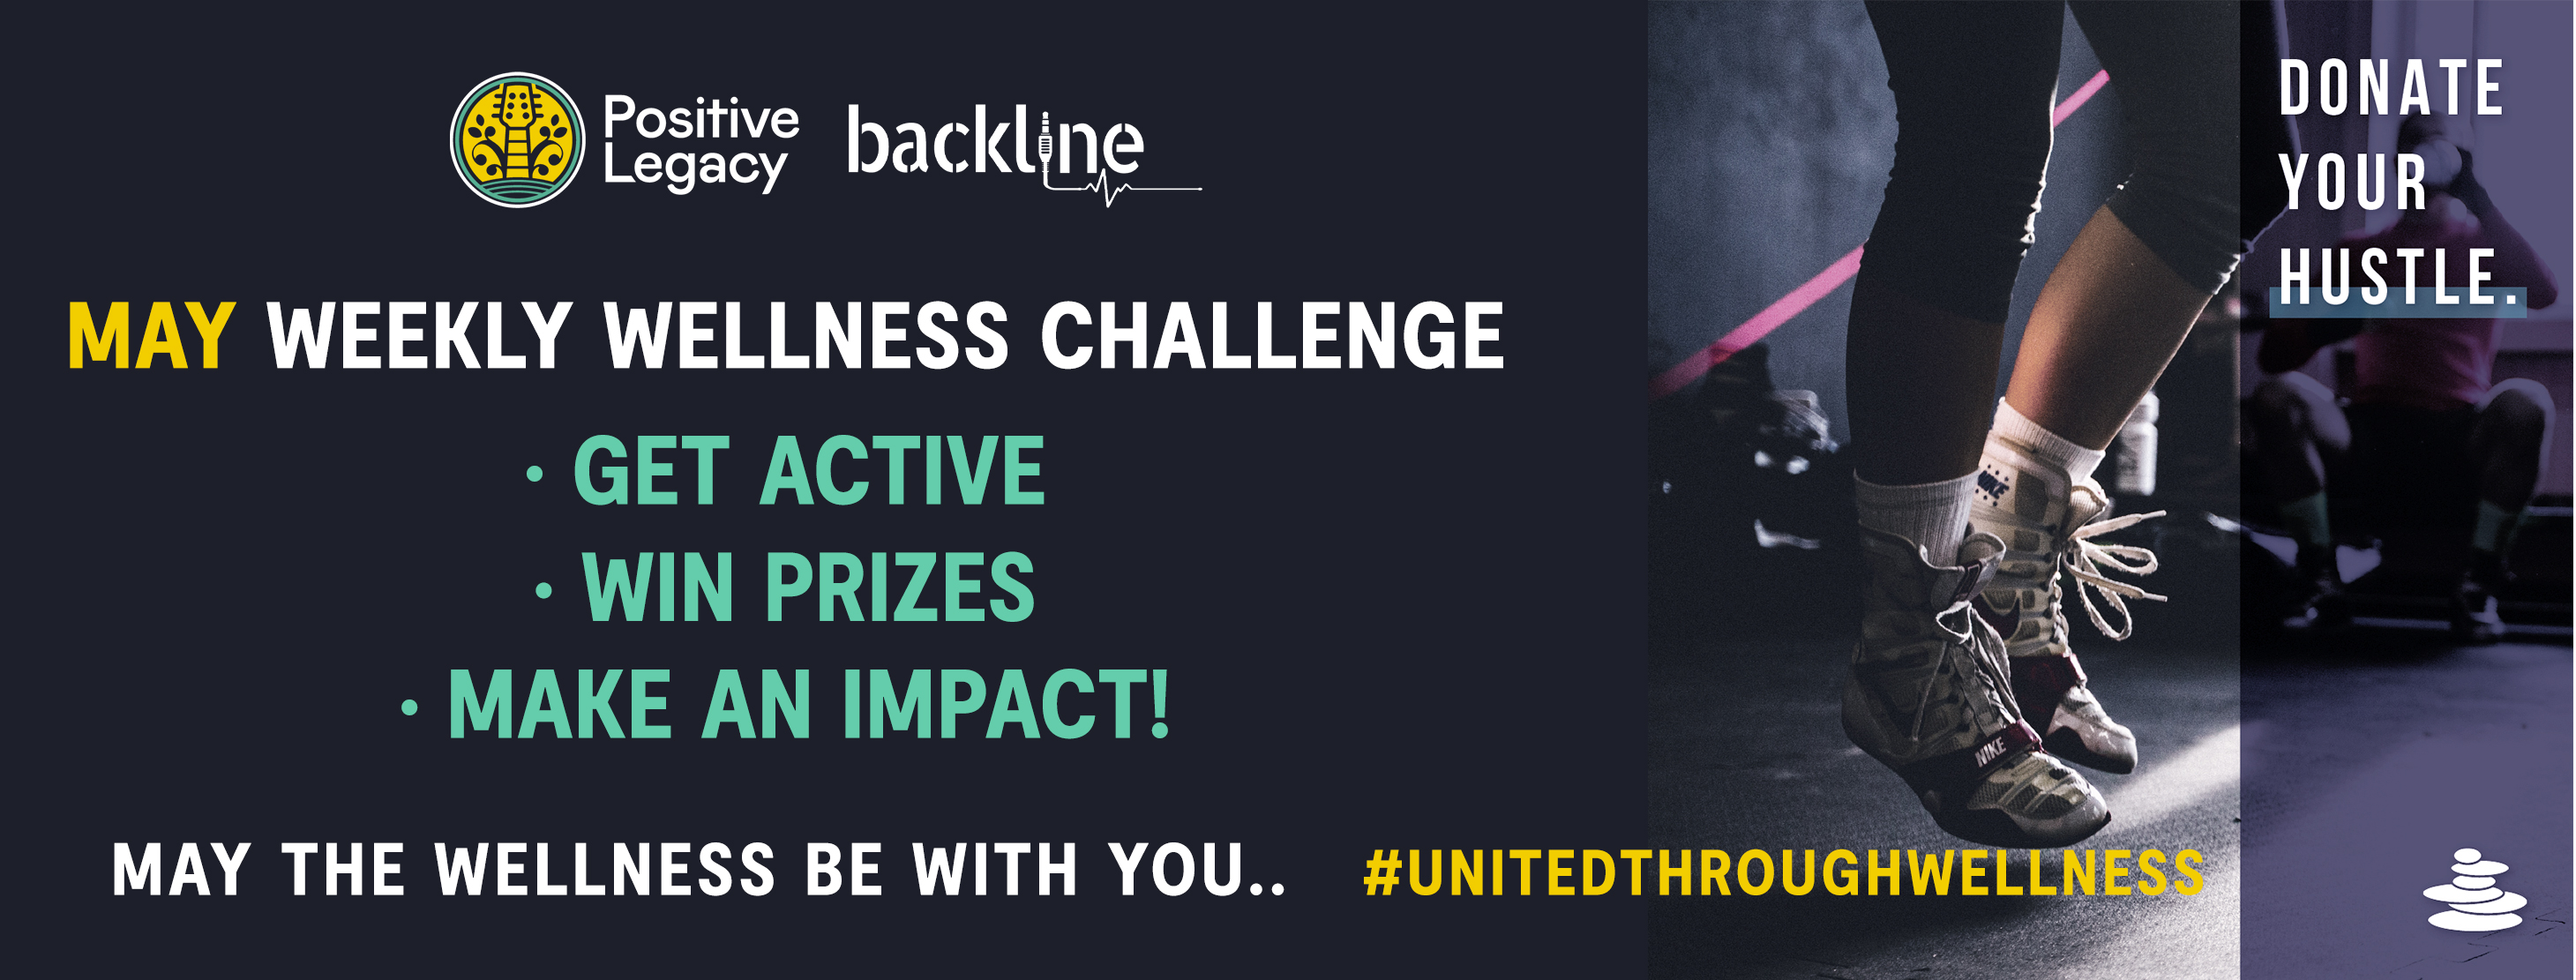 Positive Legacy Announces a Wellness Challenge in Partnership with Backline and Kilter